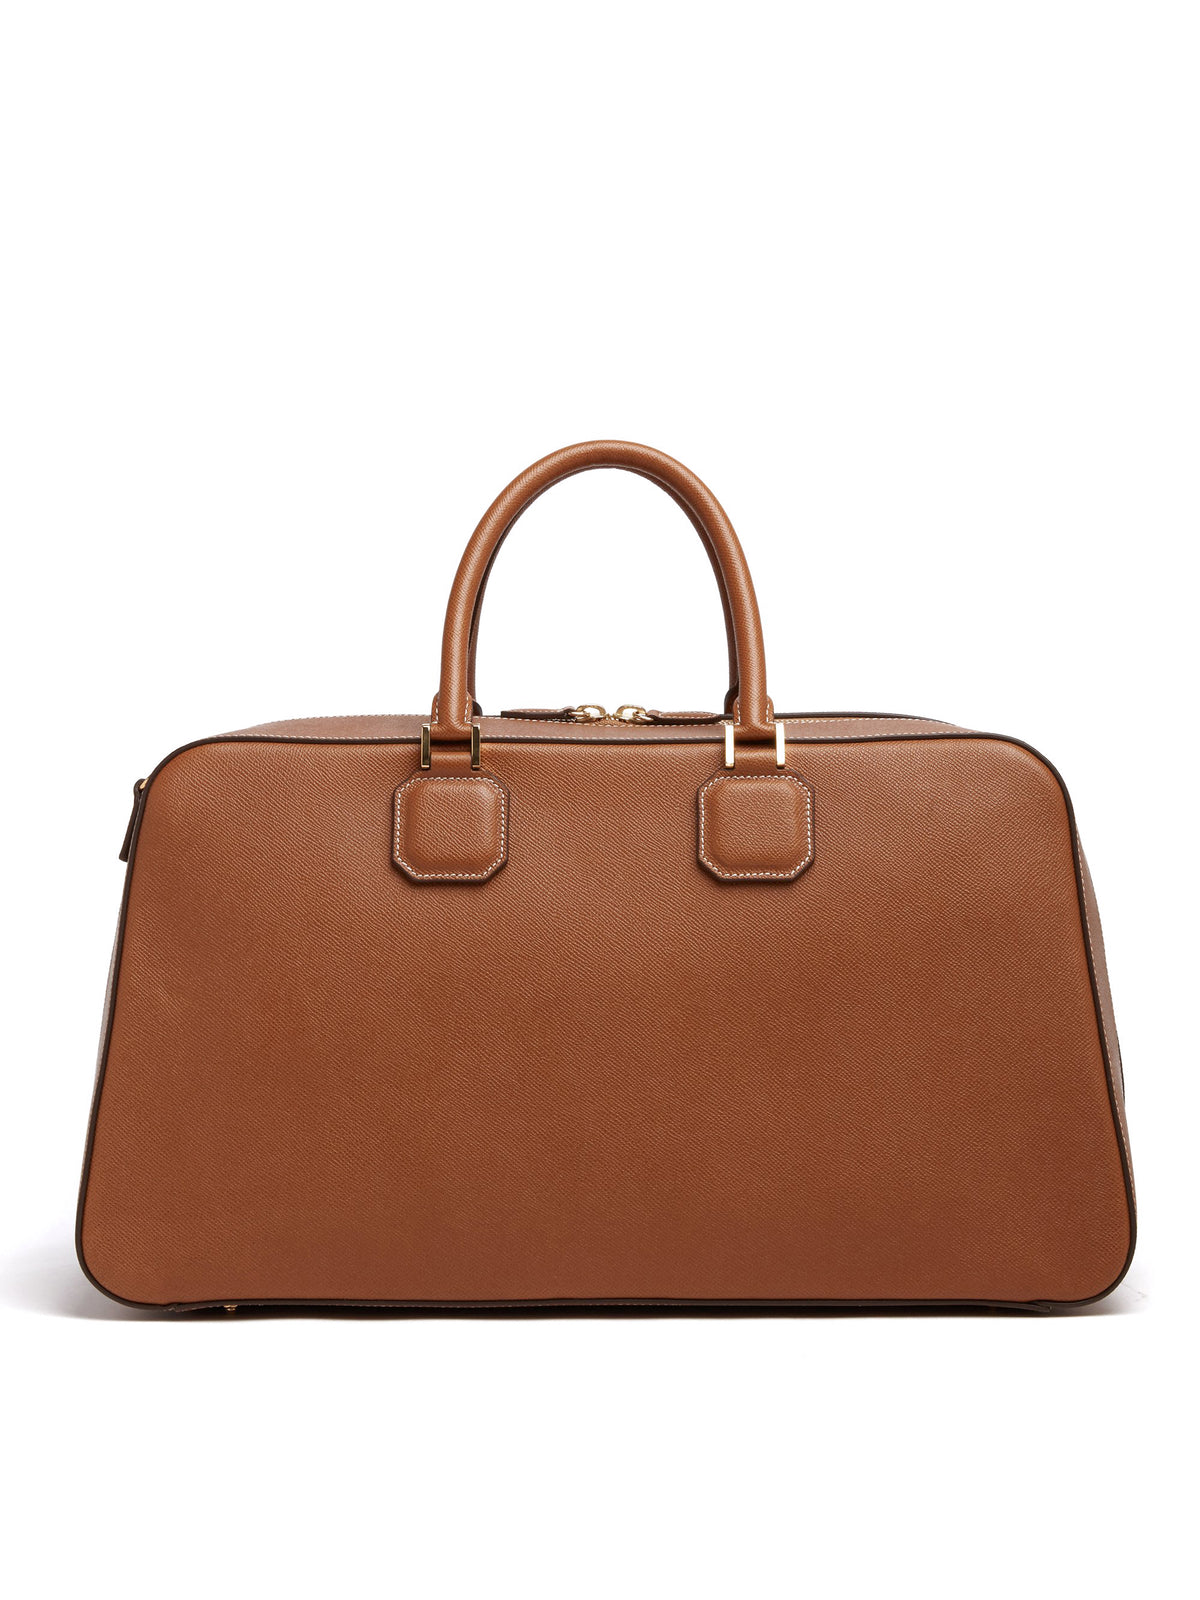 Mark Cross Cole Leather Duffle Bag Saffiano Luggage Back